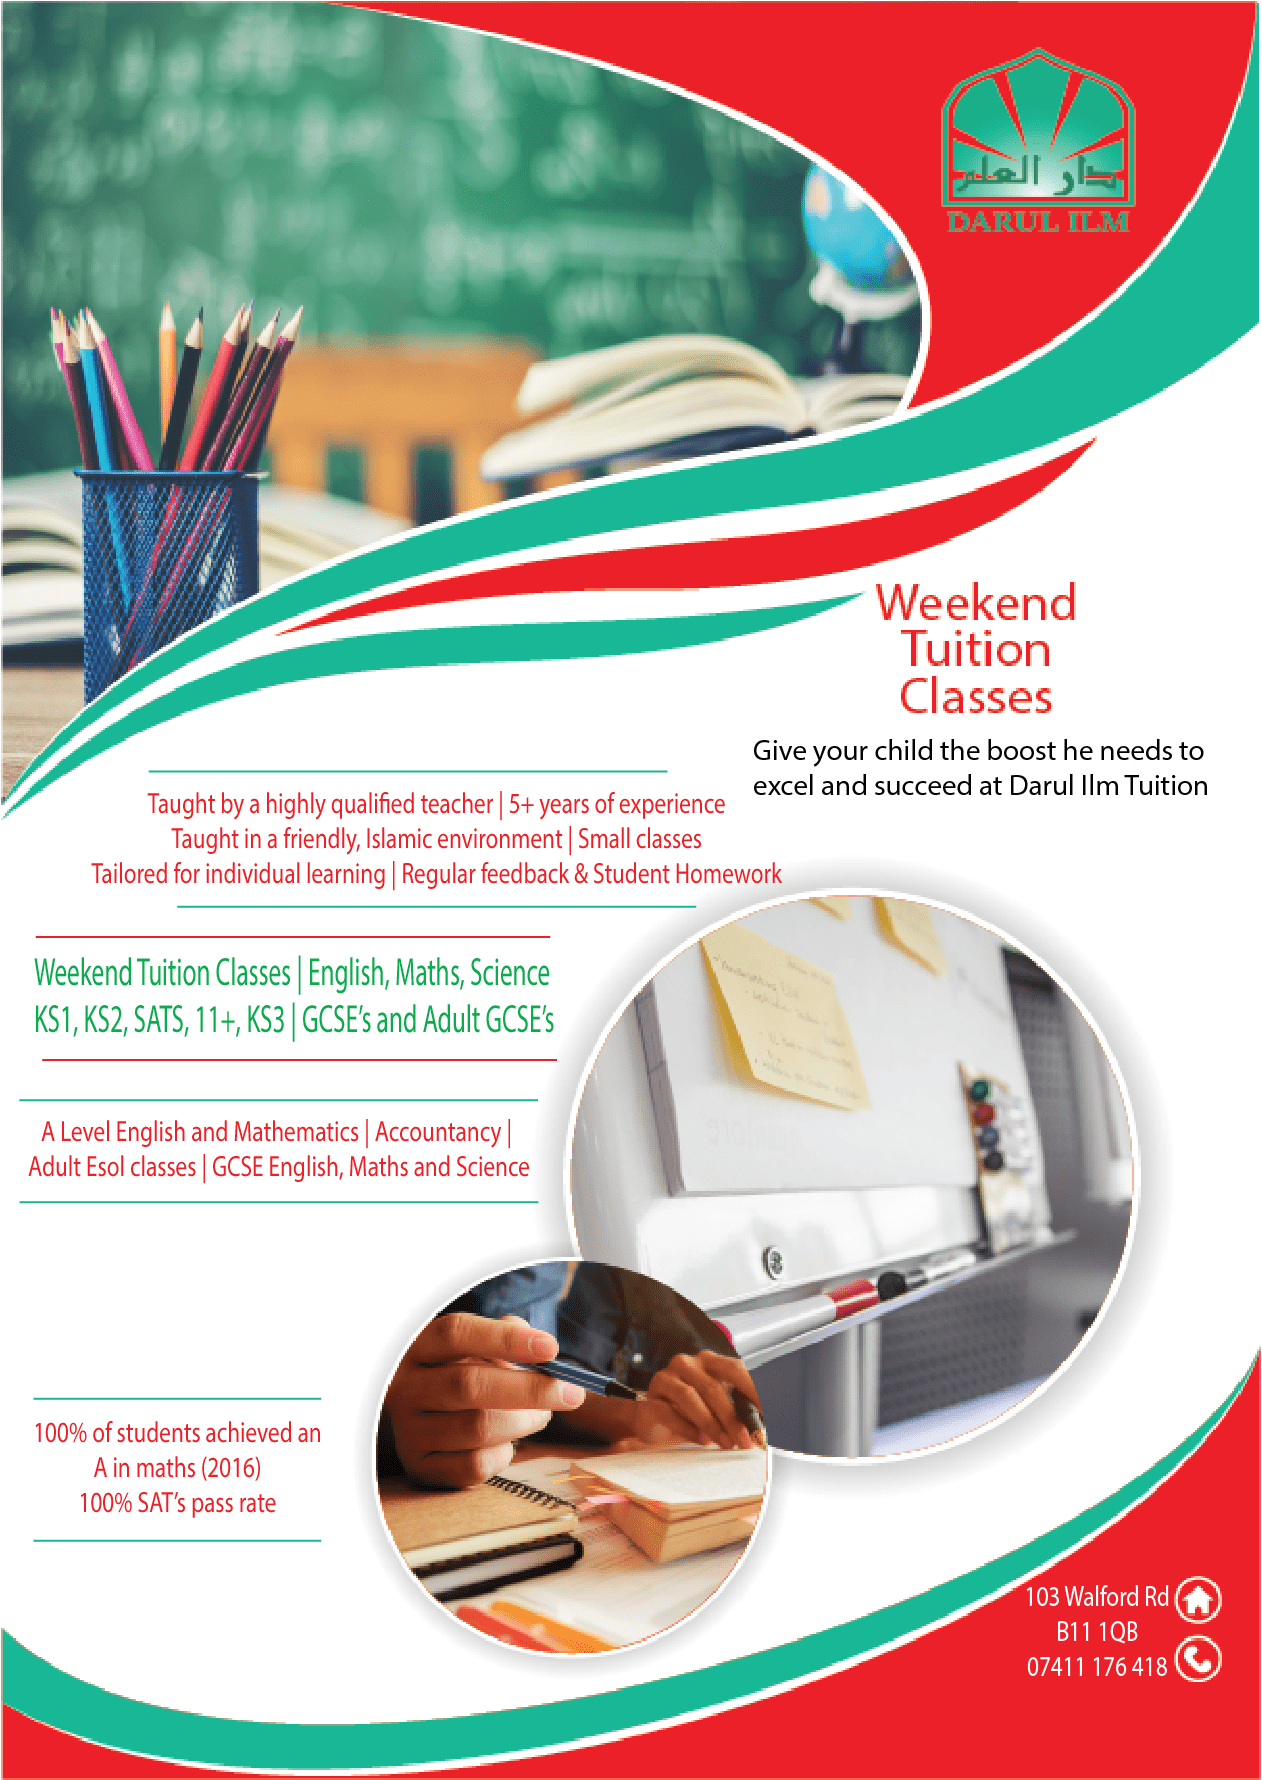 Weekend Tuition Classes